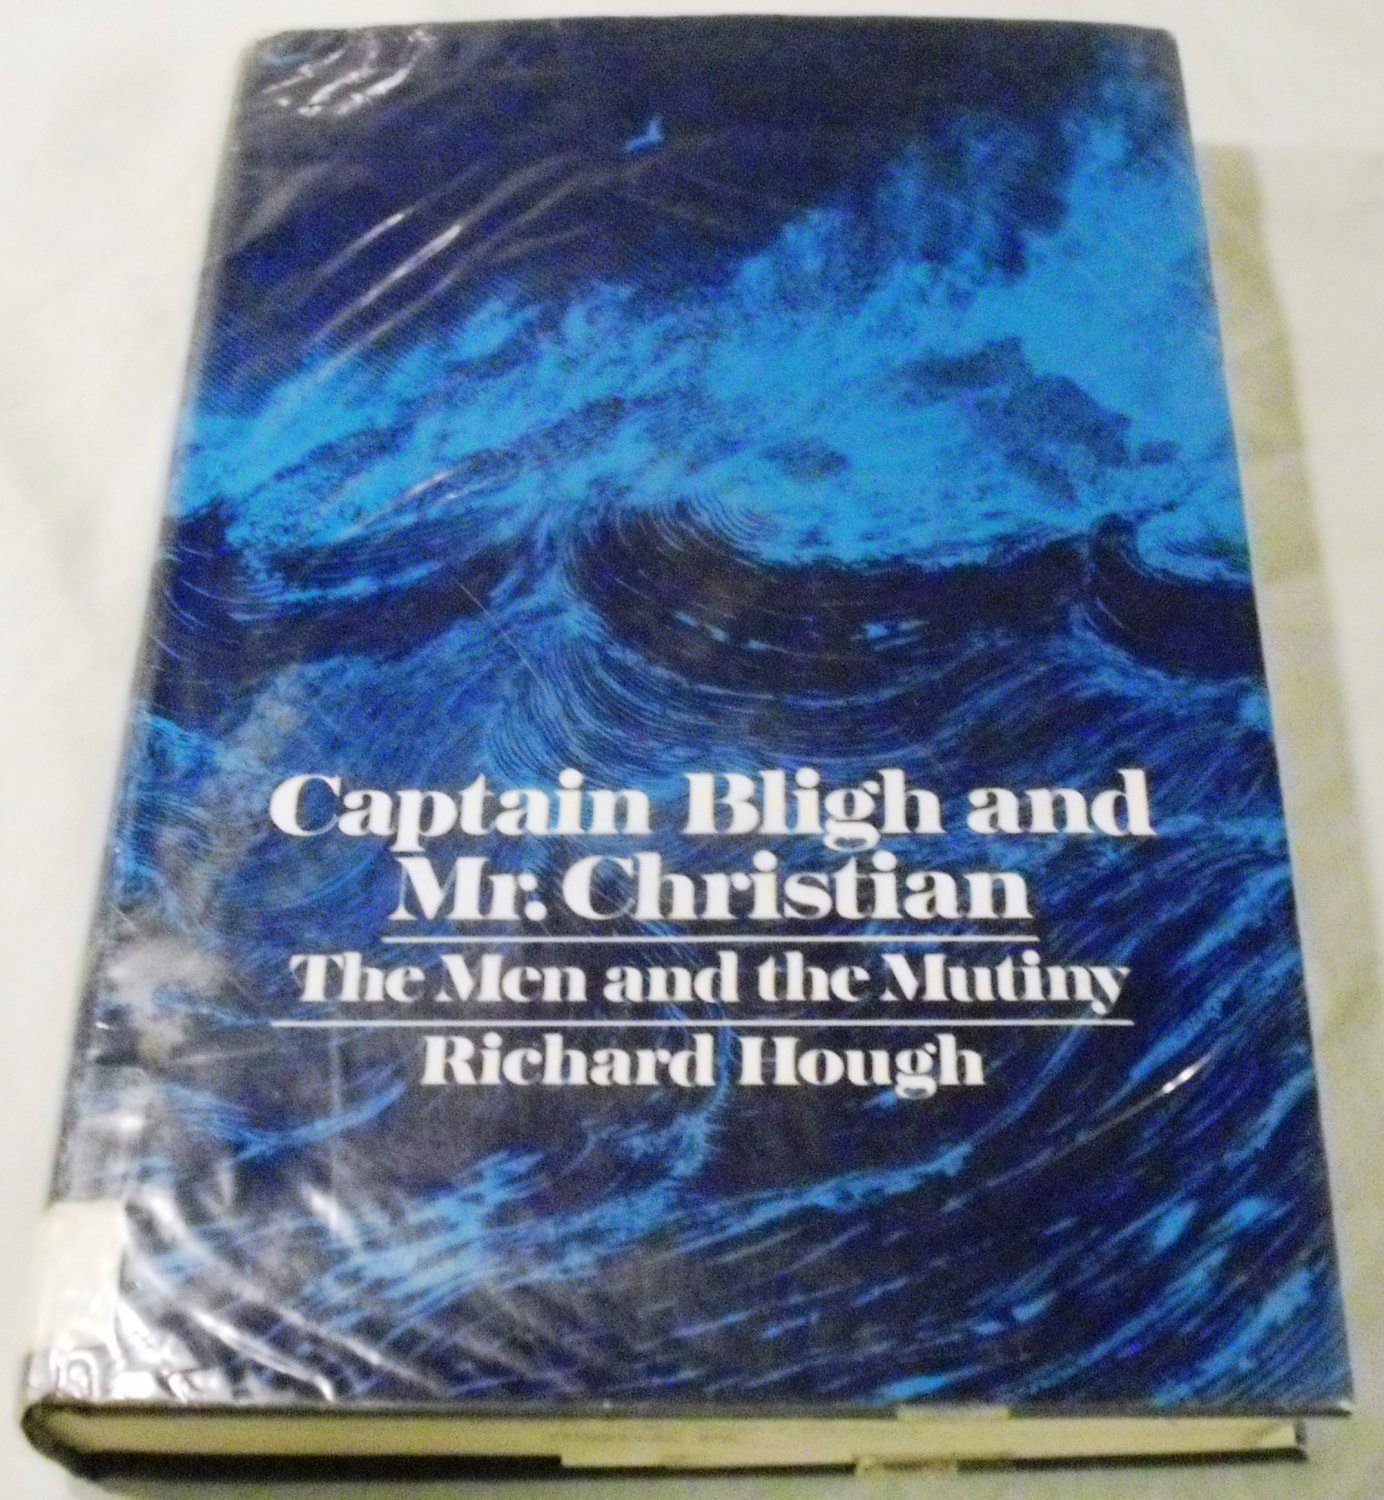 Captain Bligh & Mr. Christian: The Men and the Mutiny by Richard Alexander Hough (1973)